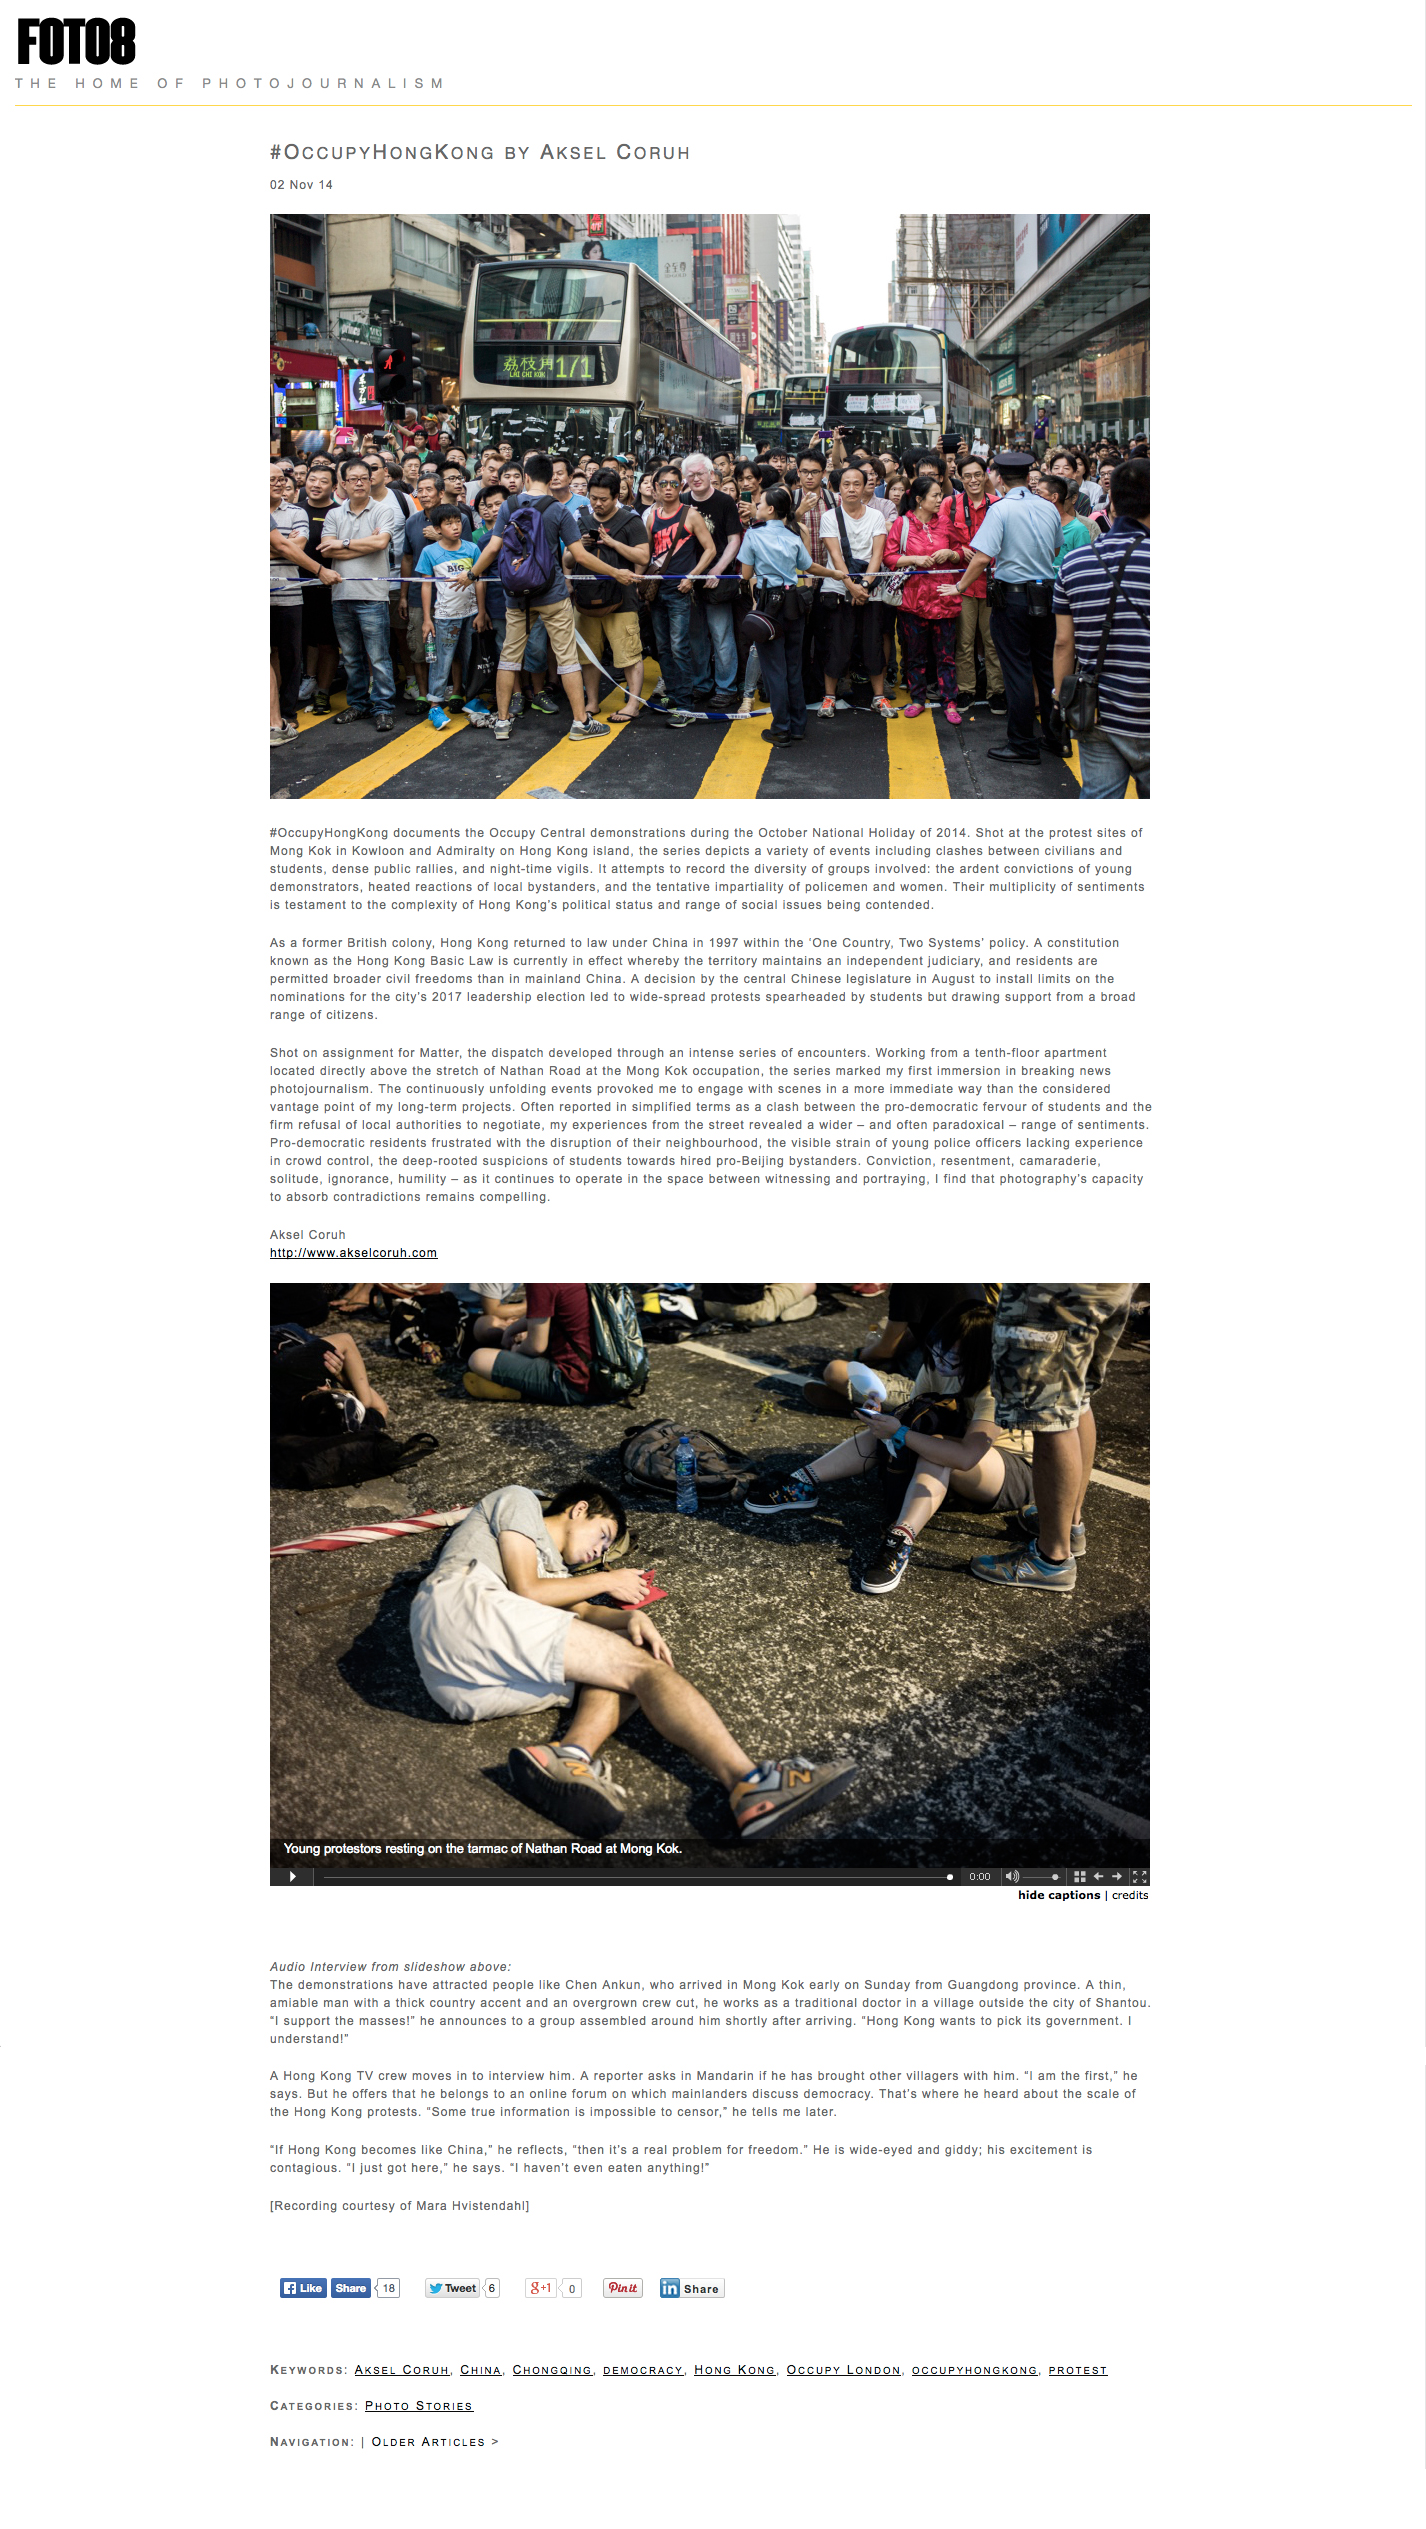 2014_Clippings_Foto8_OccupyHongKong_20141102.jpg